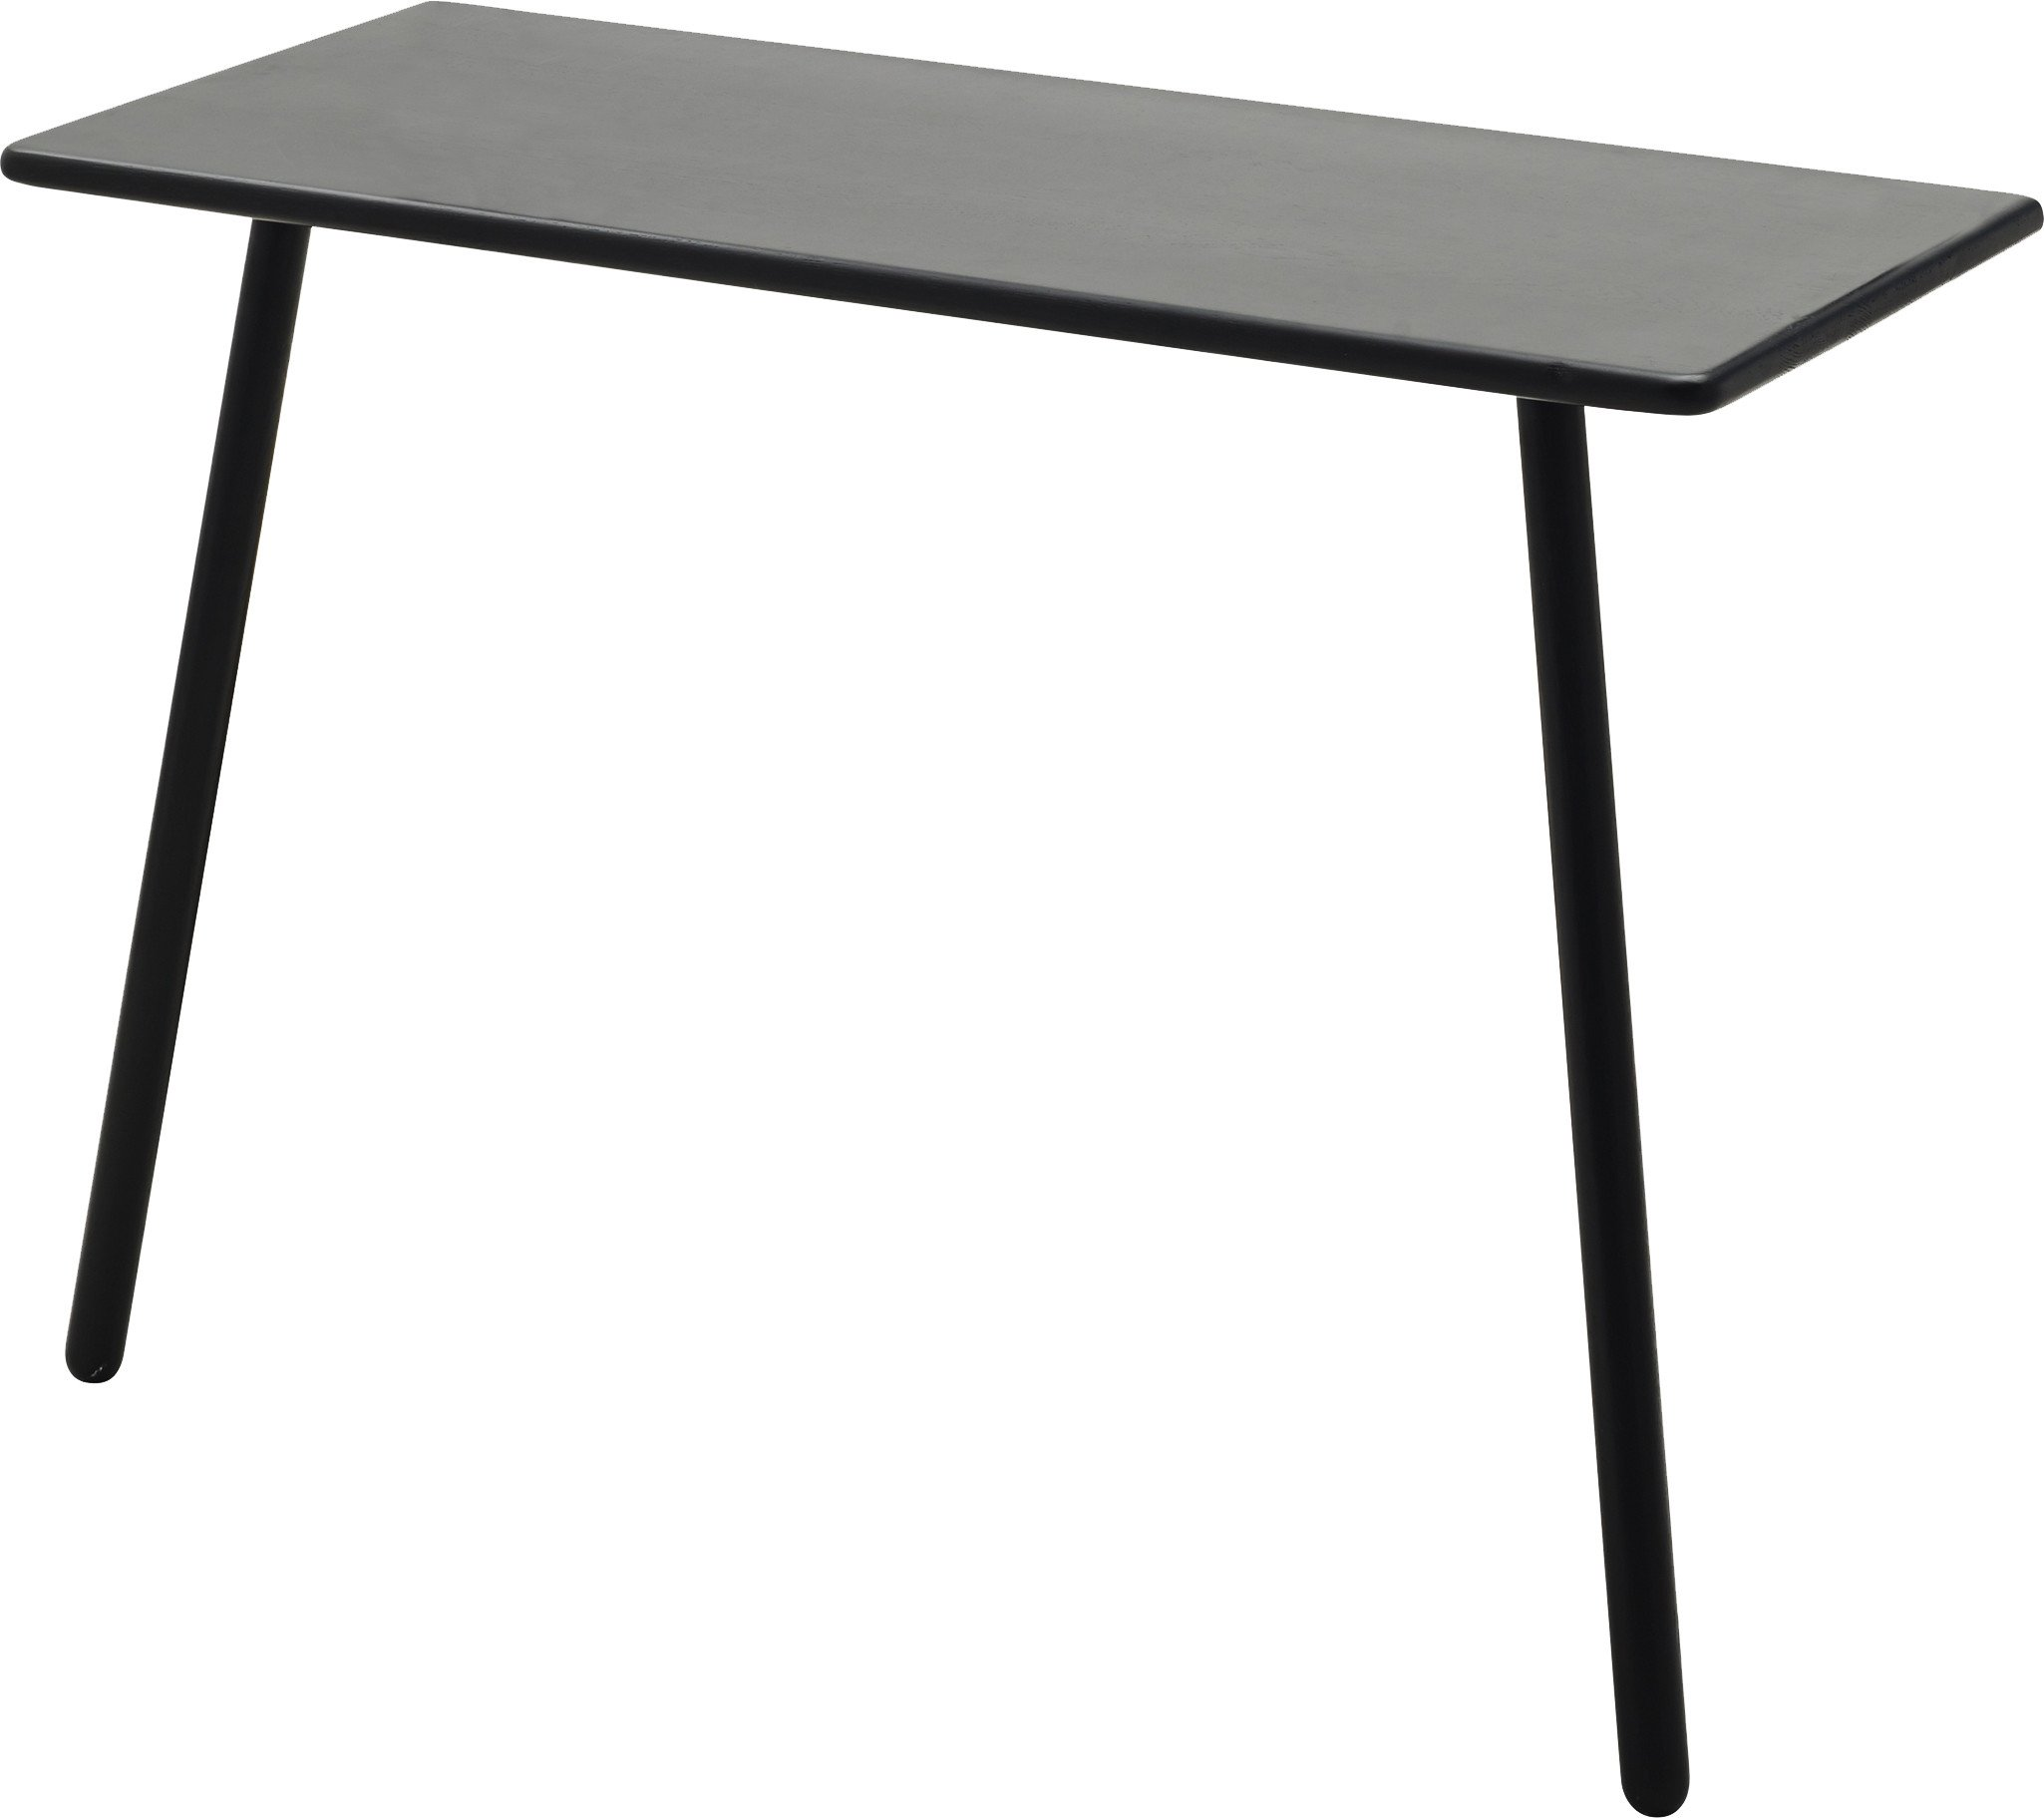 Georg Console Table Black Oak by C. Liljenberg Halstrøm, Skagerak